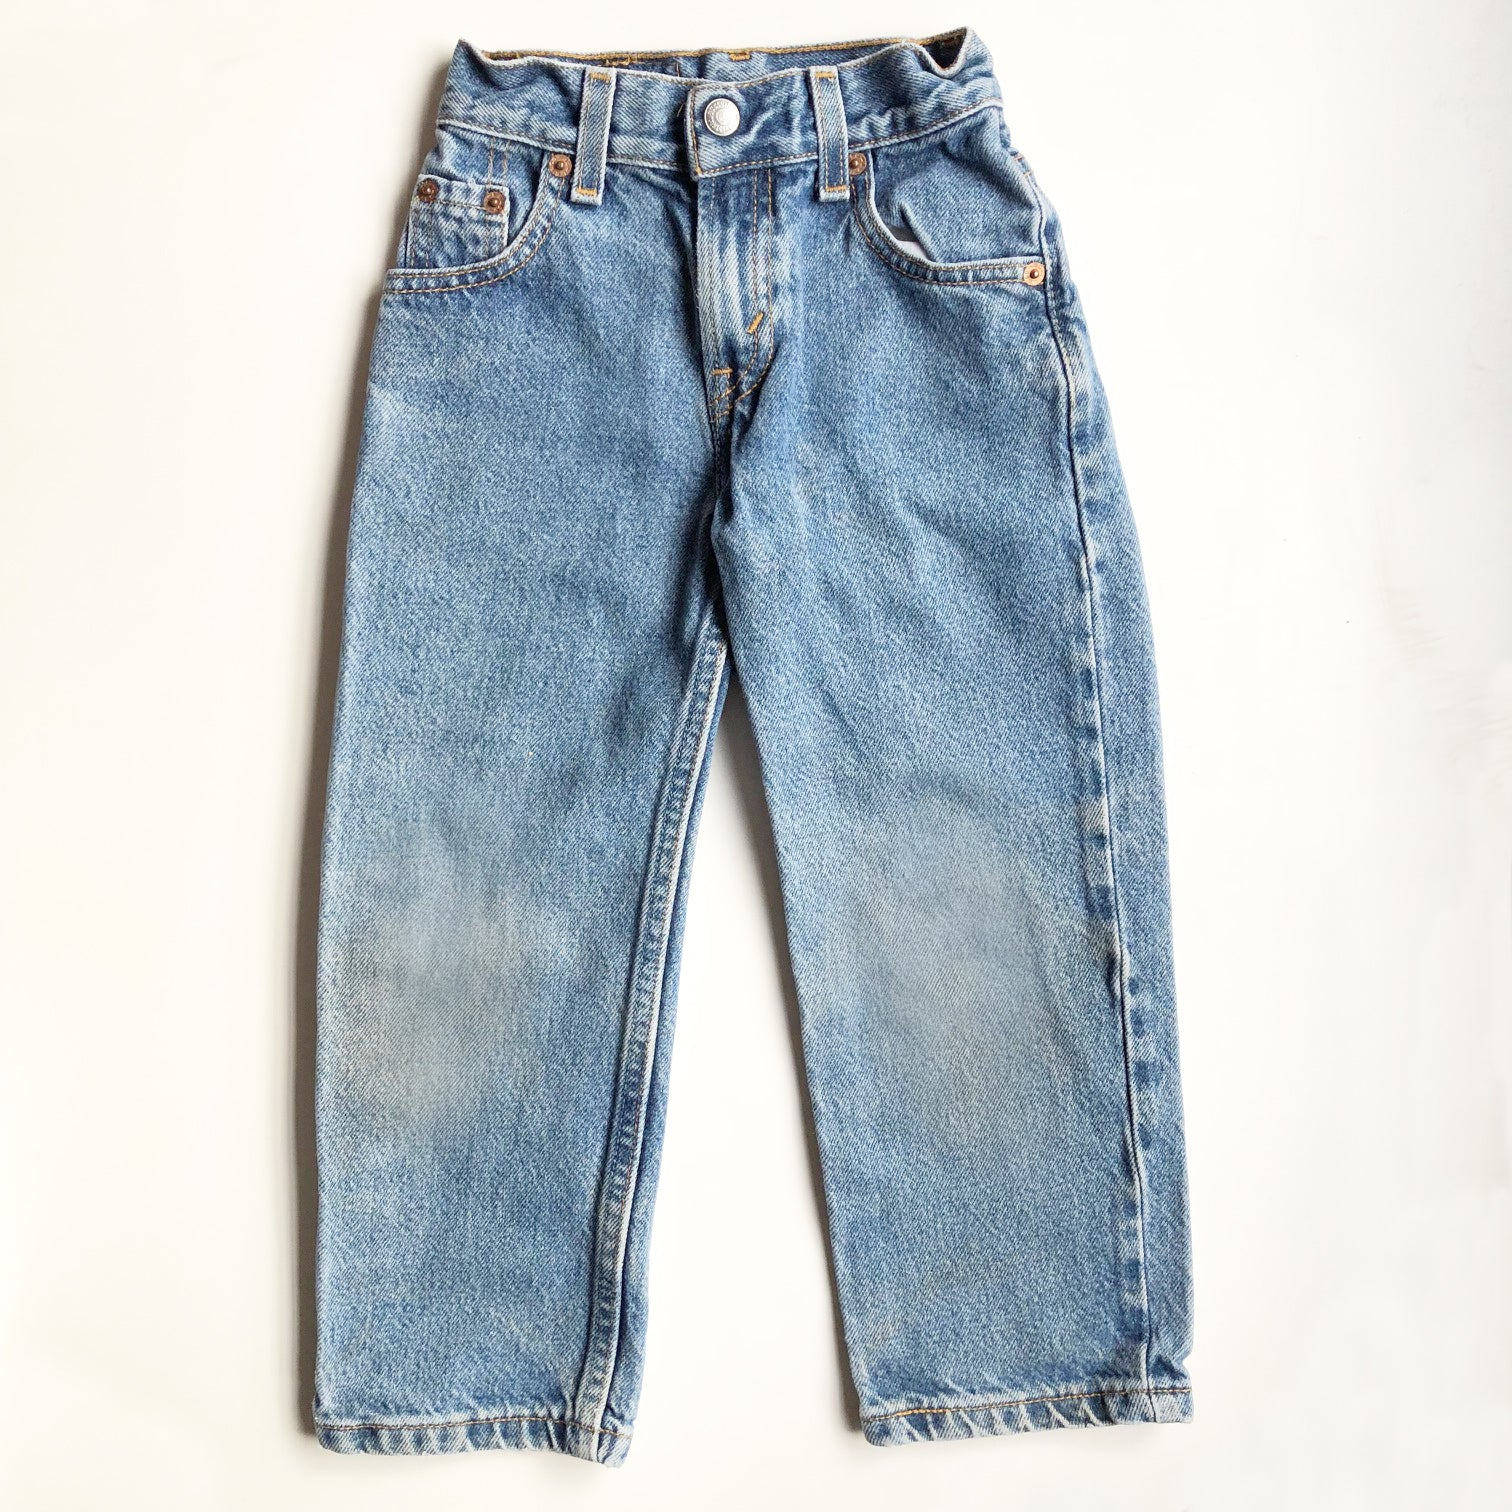 Vintage preloved Levis size 4